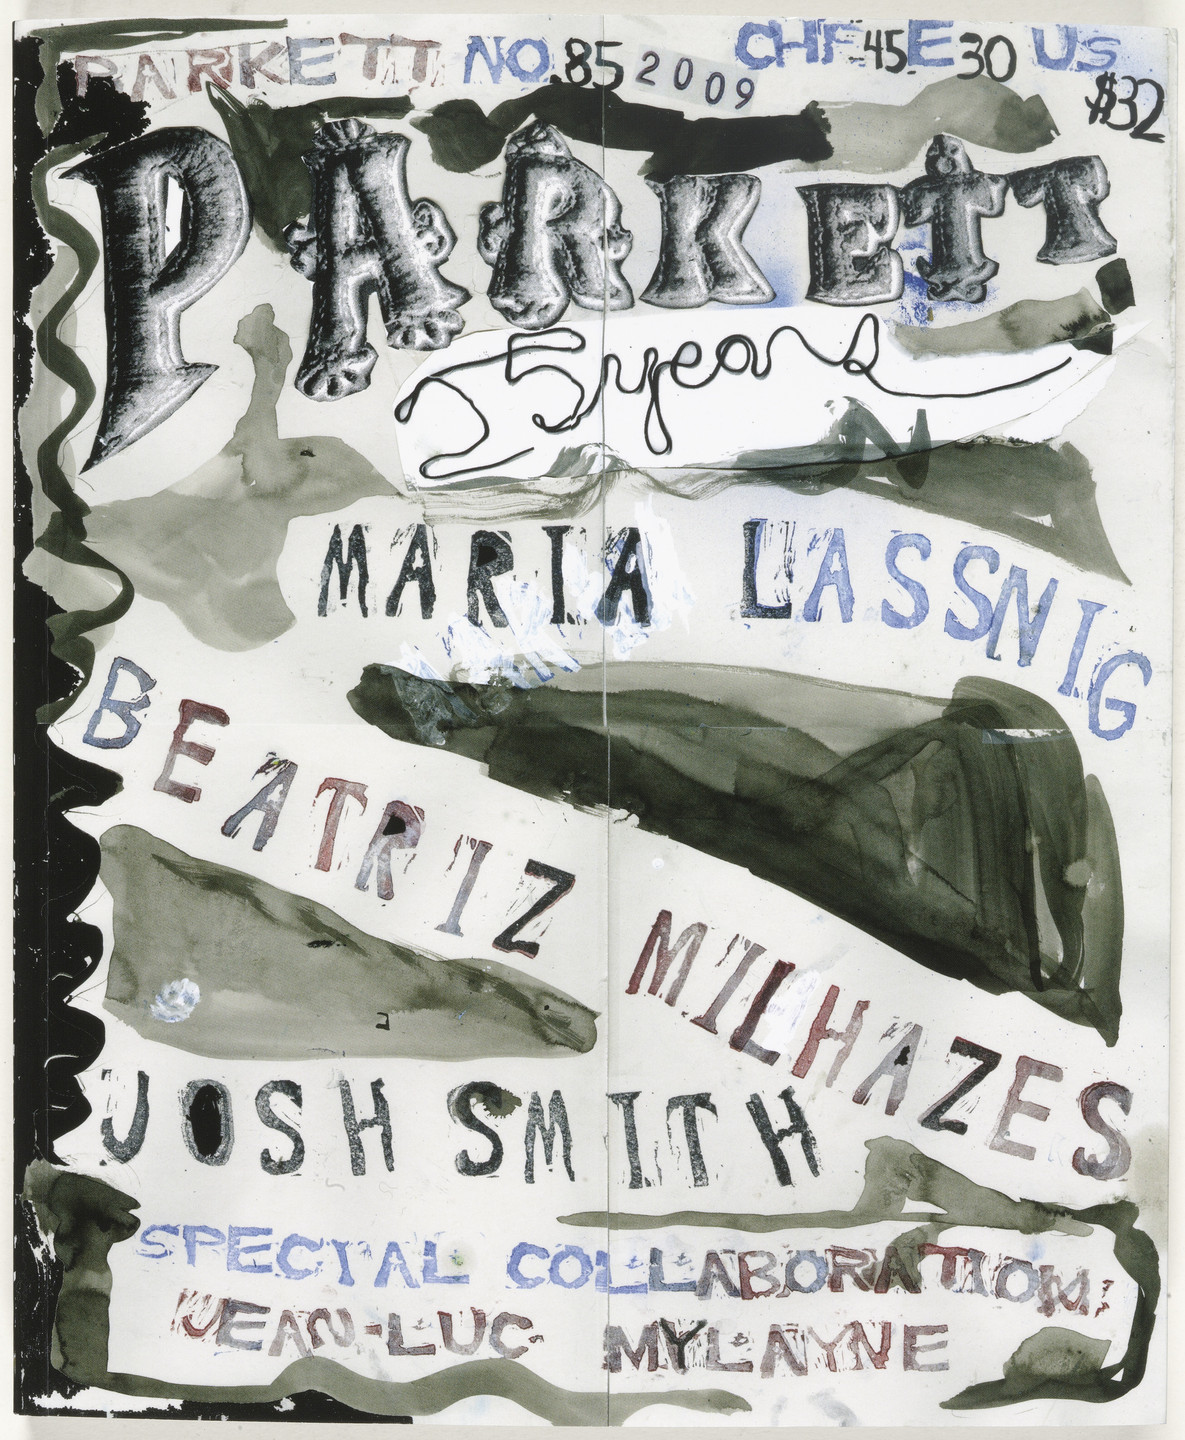 Various Artists, Maria Lassnig, Beatriz Milhazes, Jean-Luc Mylayne, Josh Smith. Parkett no. 85. 2009